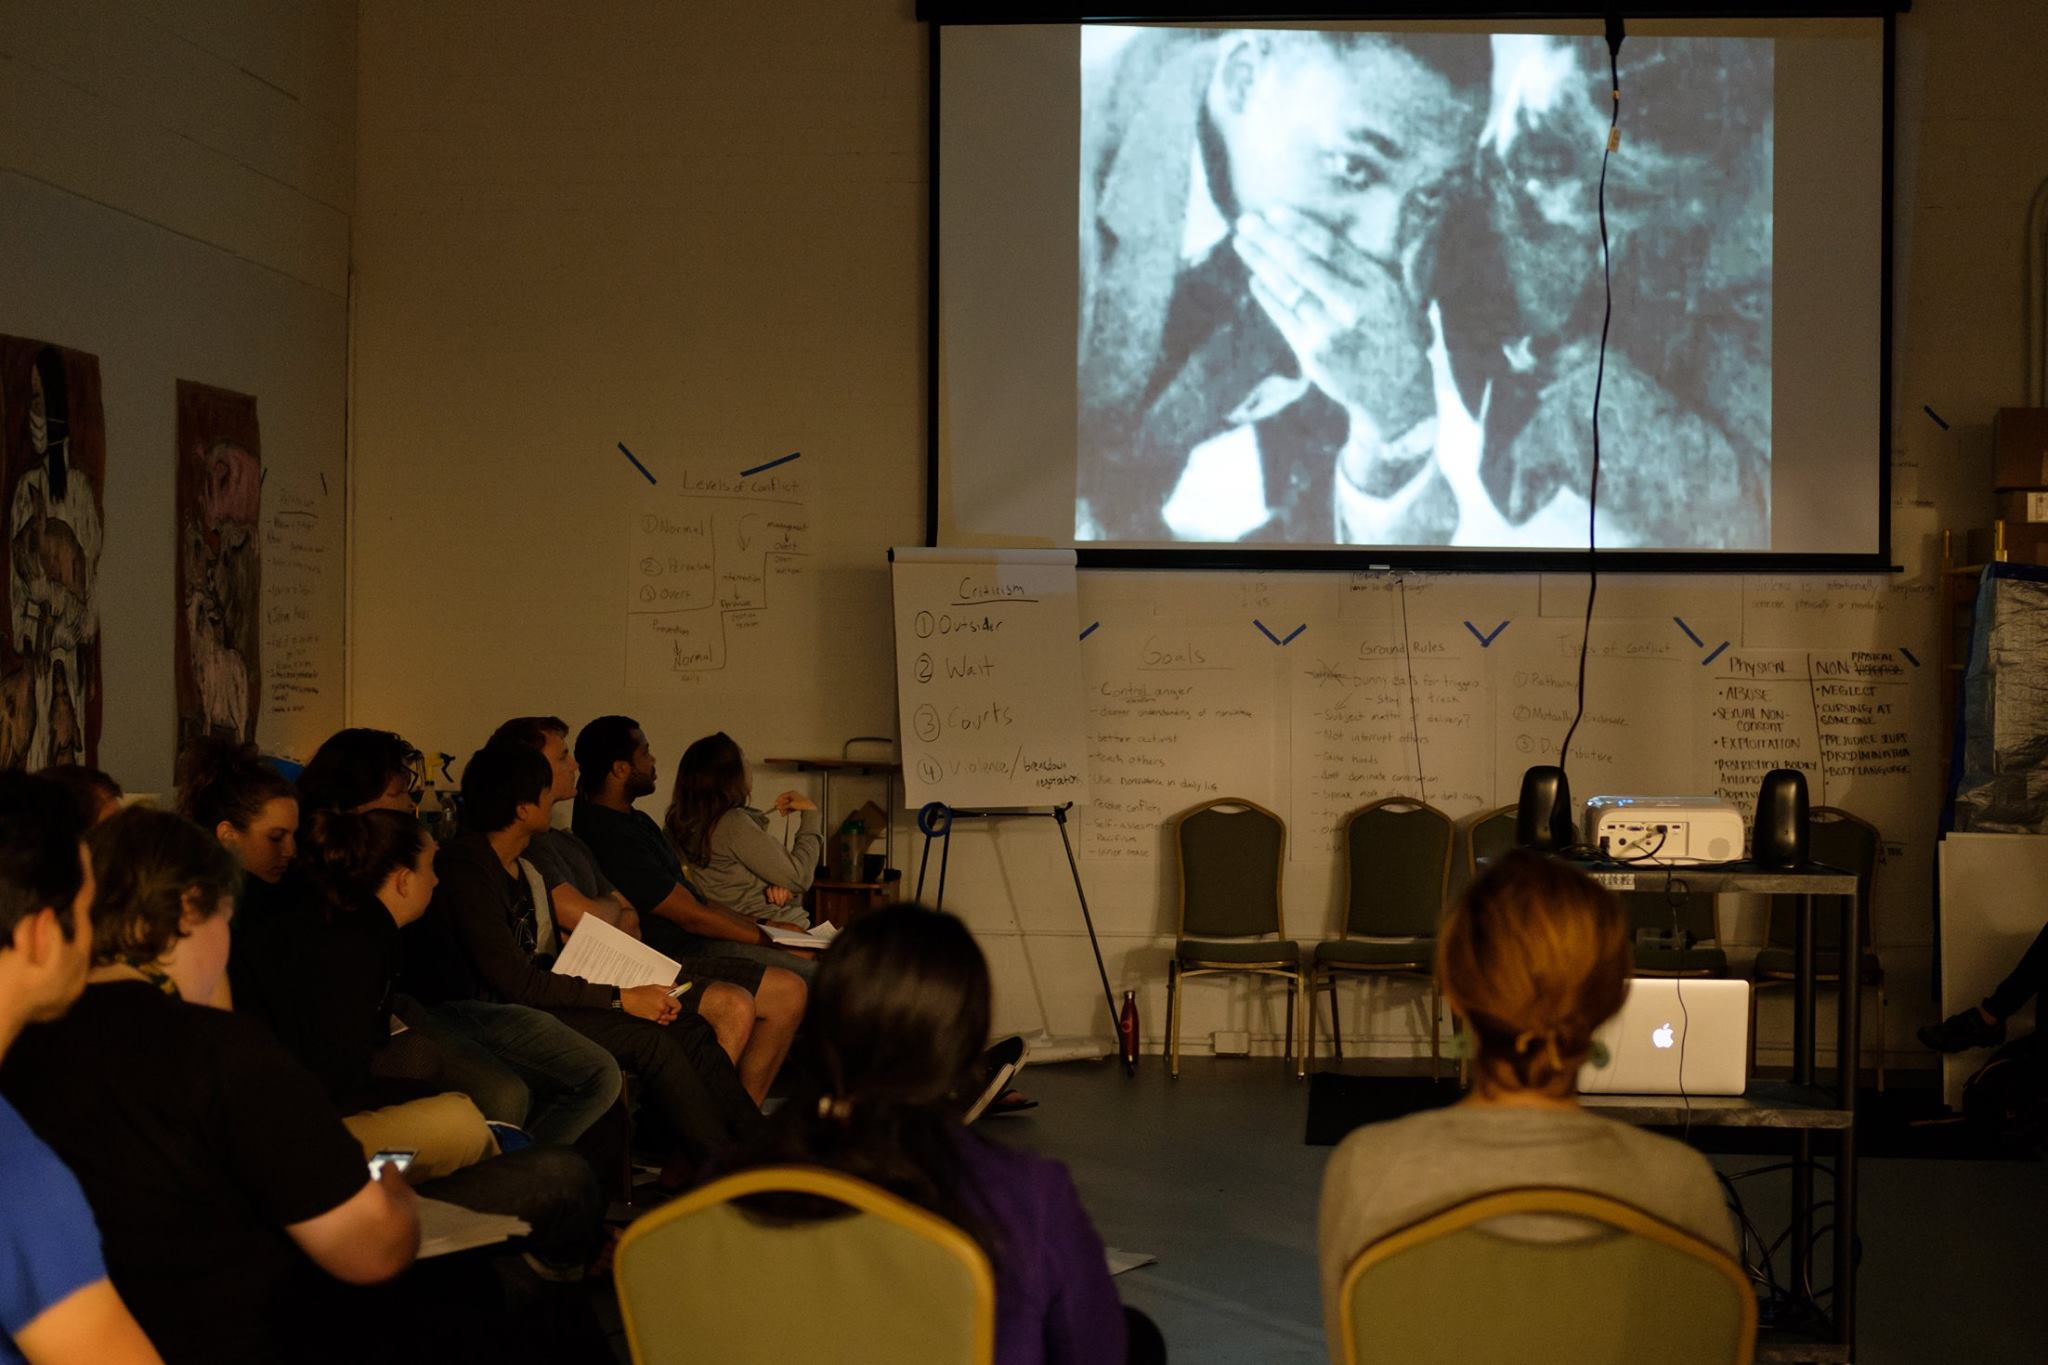 A nonviolence training at the Berkeley Animal Rights Center.